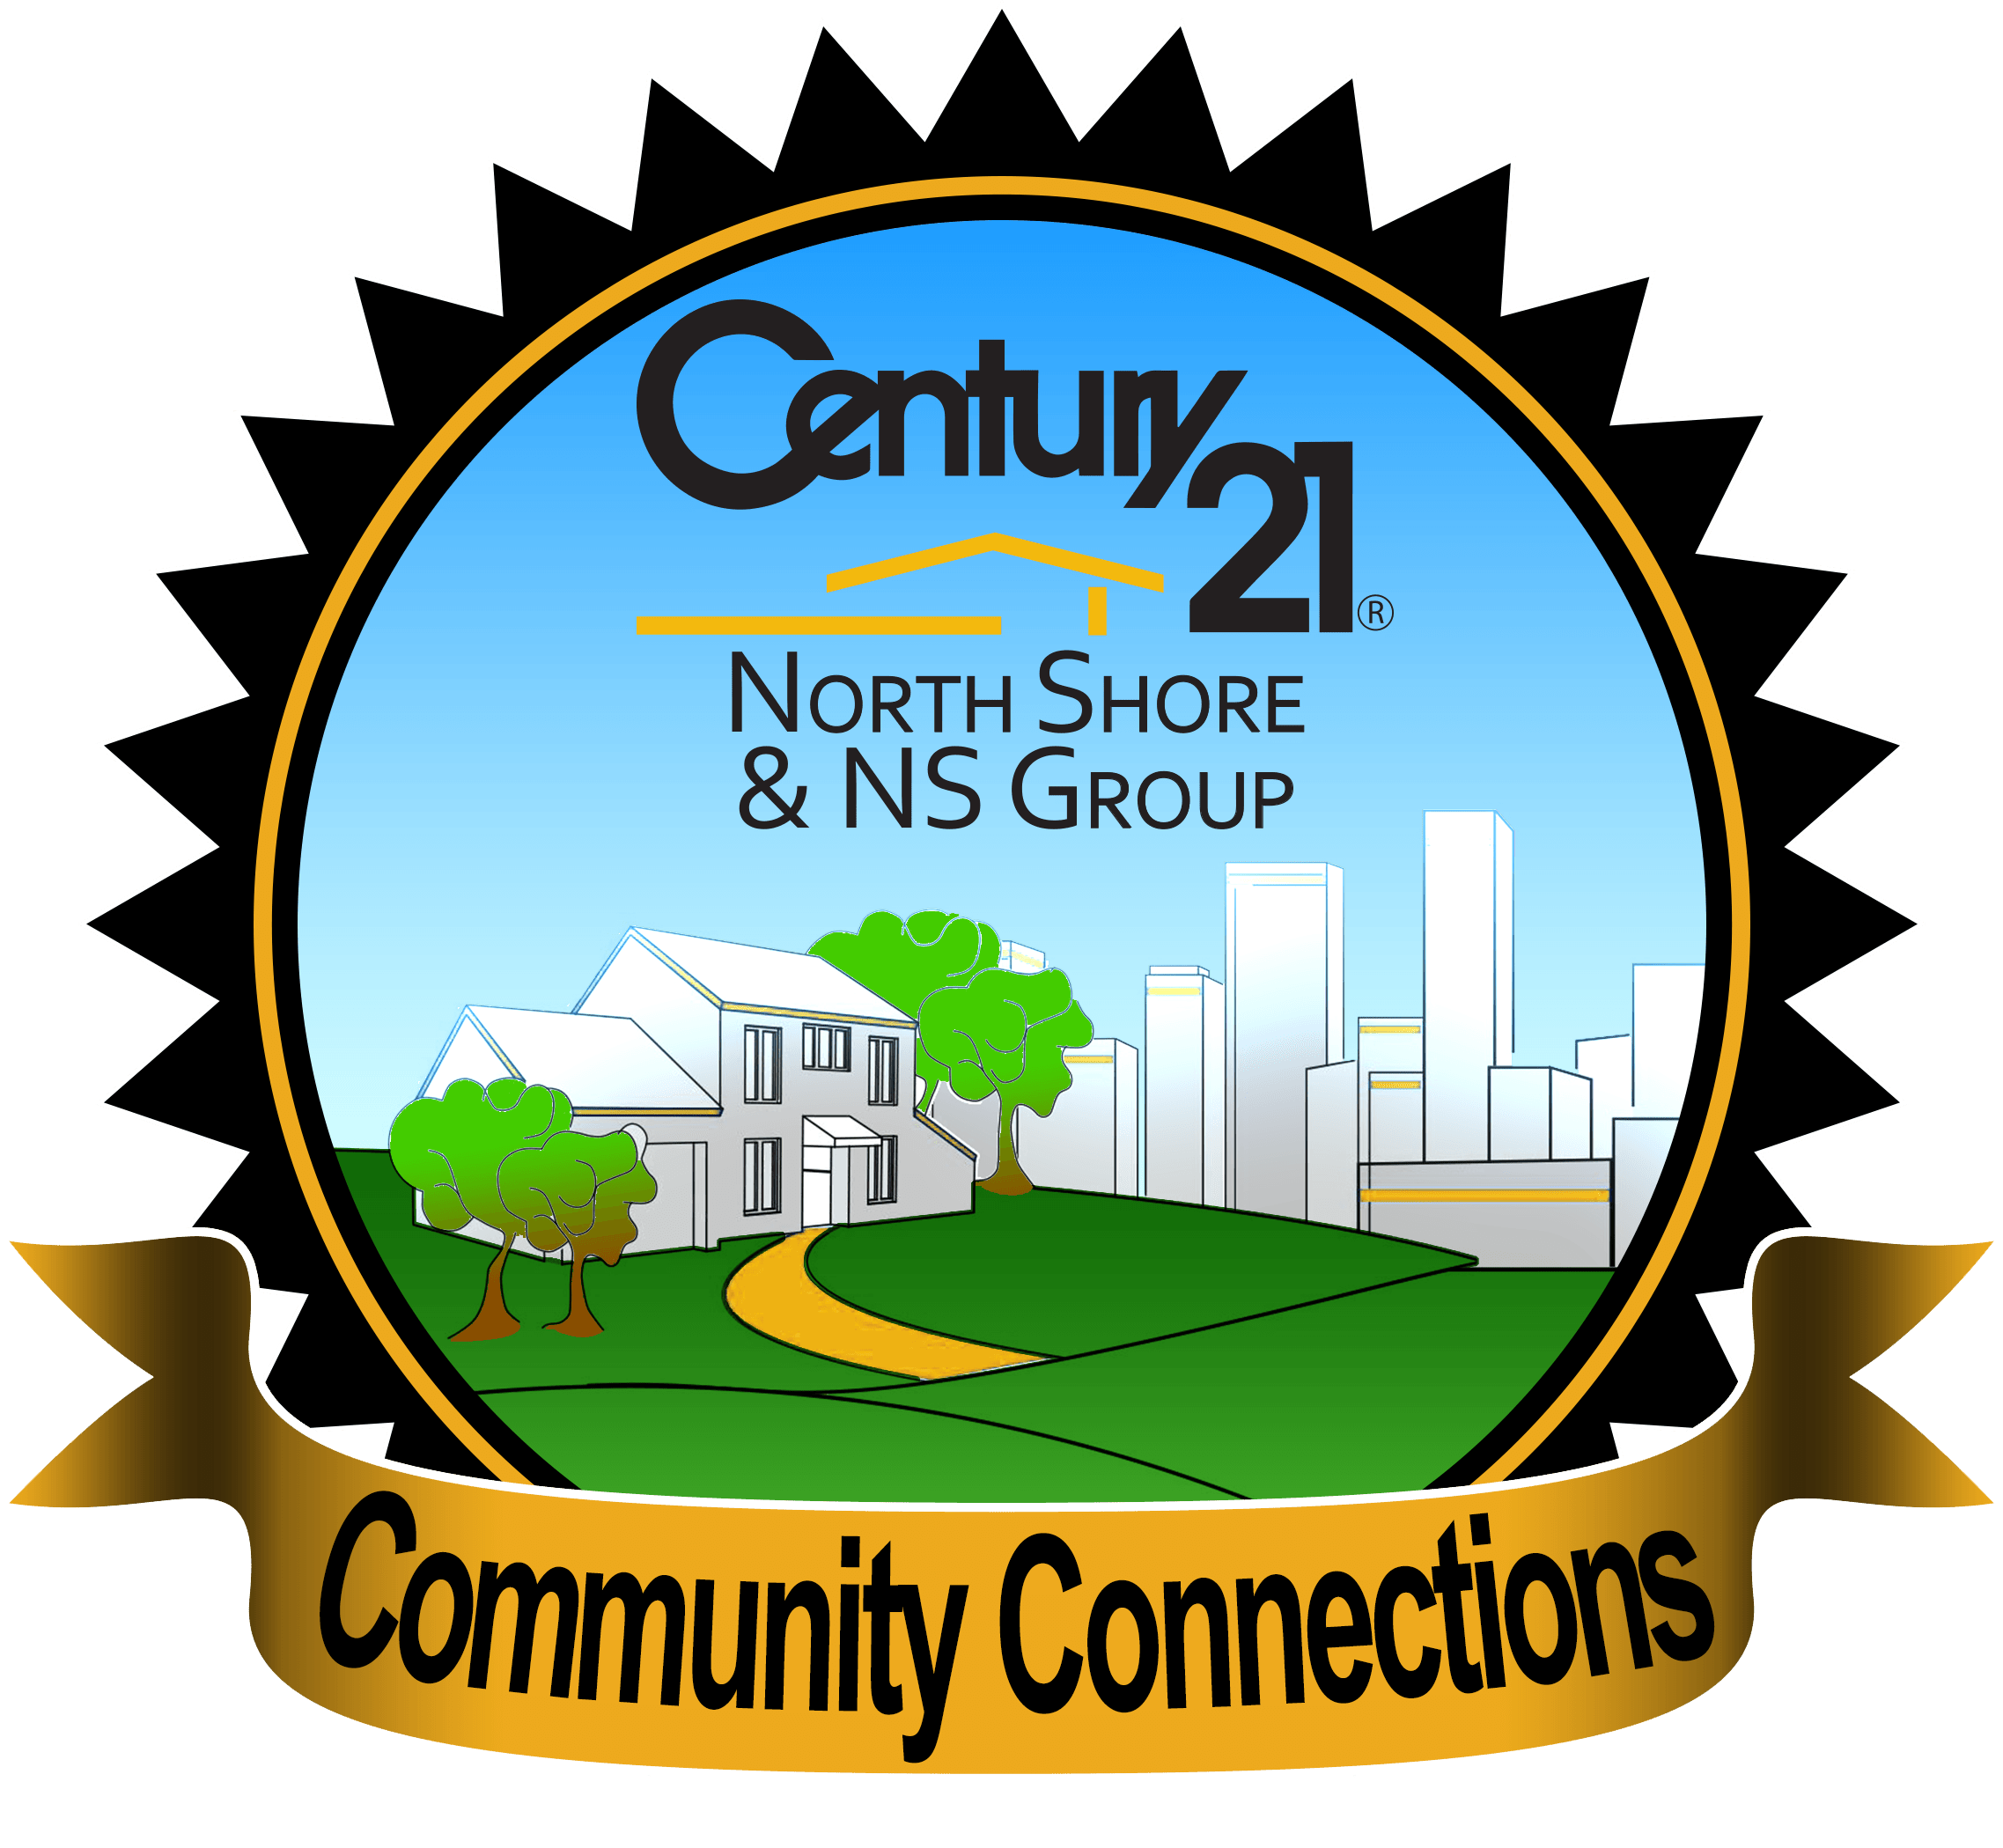 CENTURY 21 NS Group Community Connection Logo